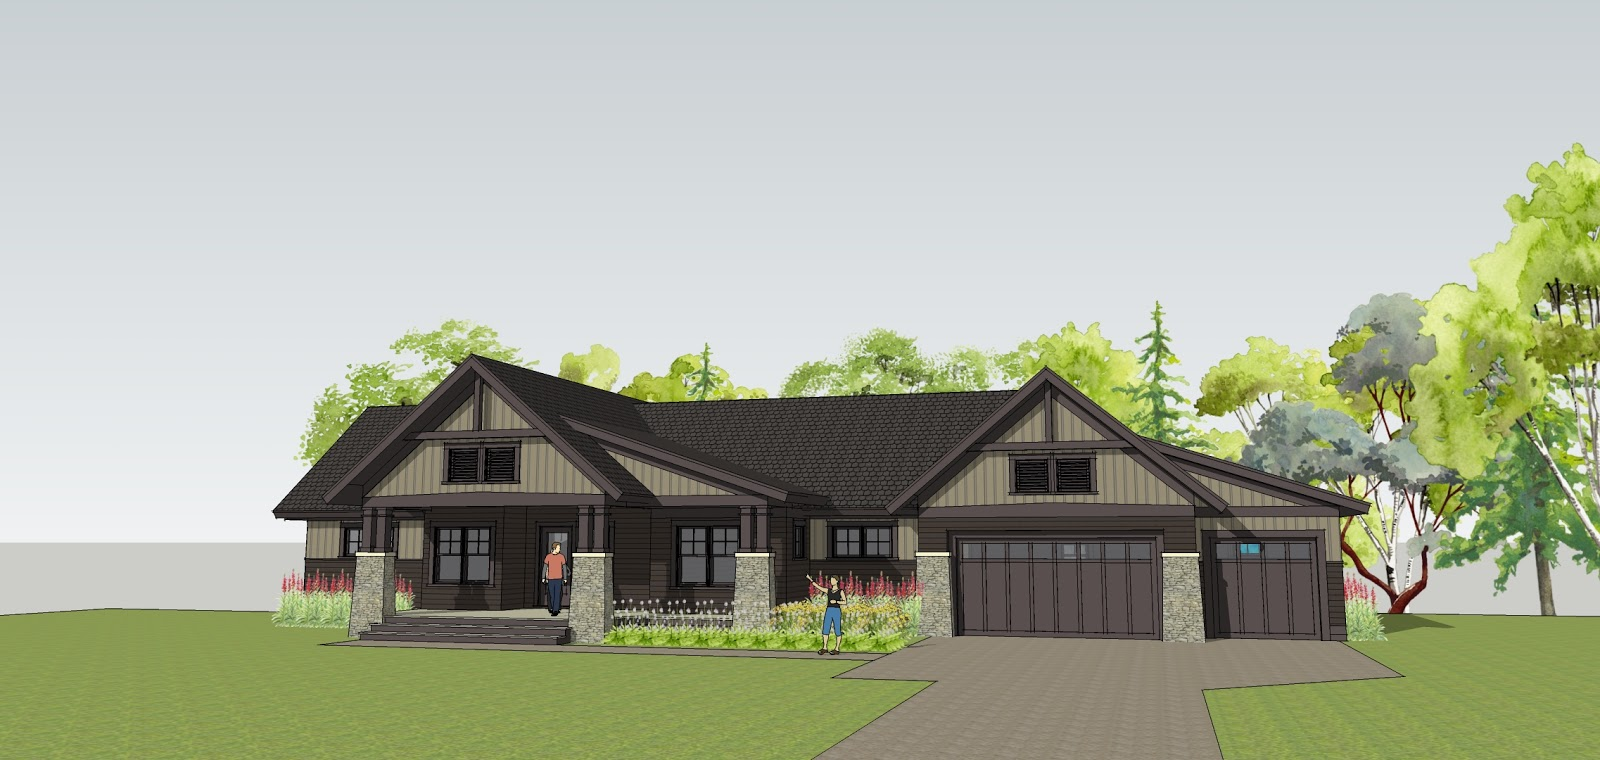 Simply Elegant Home Designs Blog: New Twist on a Craftsman Home Plan!